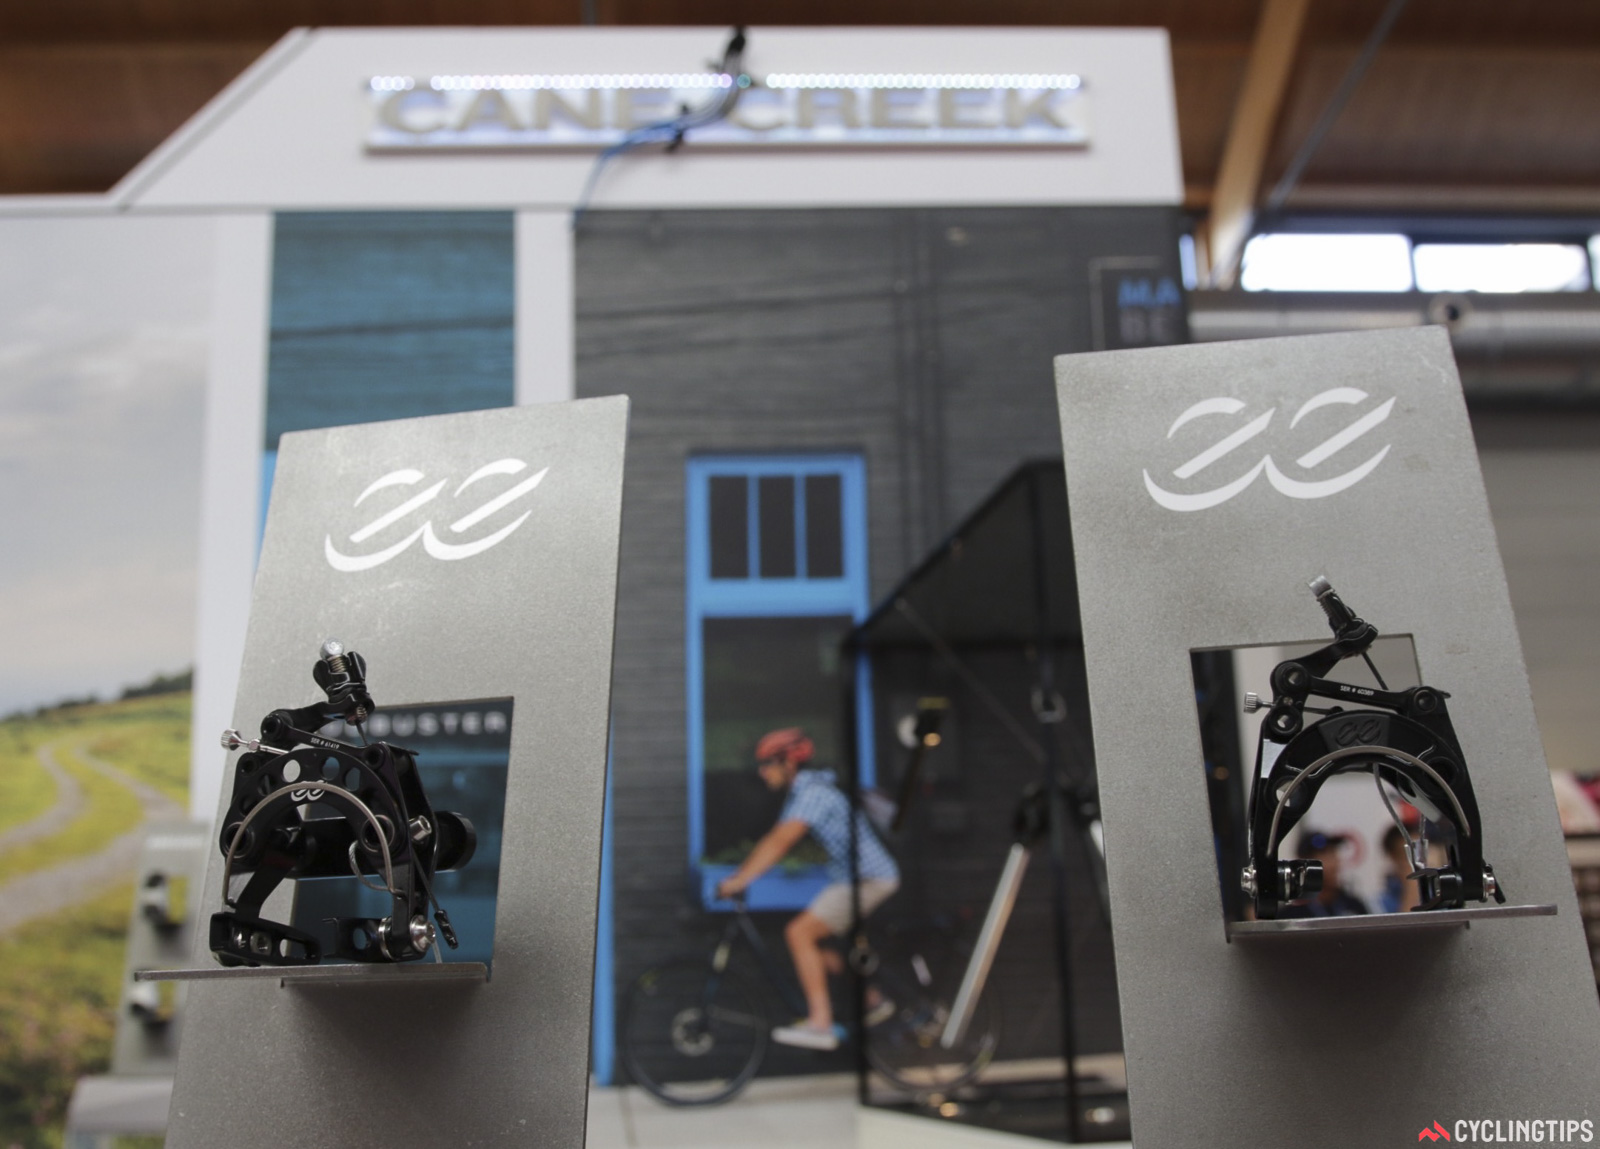 CaneCreek have partnered with eeBrake for sales, marketing and distribution. Craig of eeBrake is still involved in development, so it's safe to expect a number of new components from CaneCreek in future. Photo: David Rome.